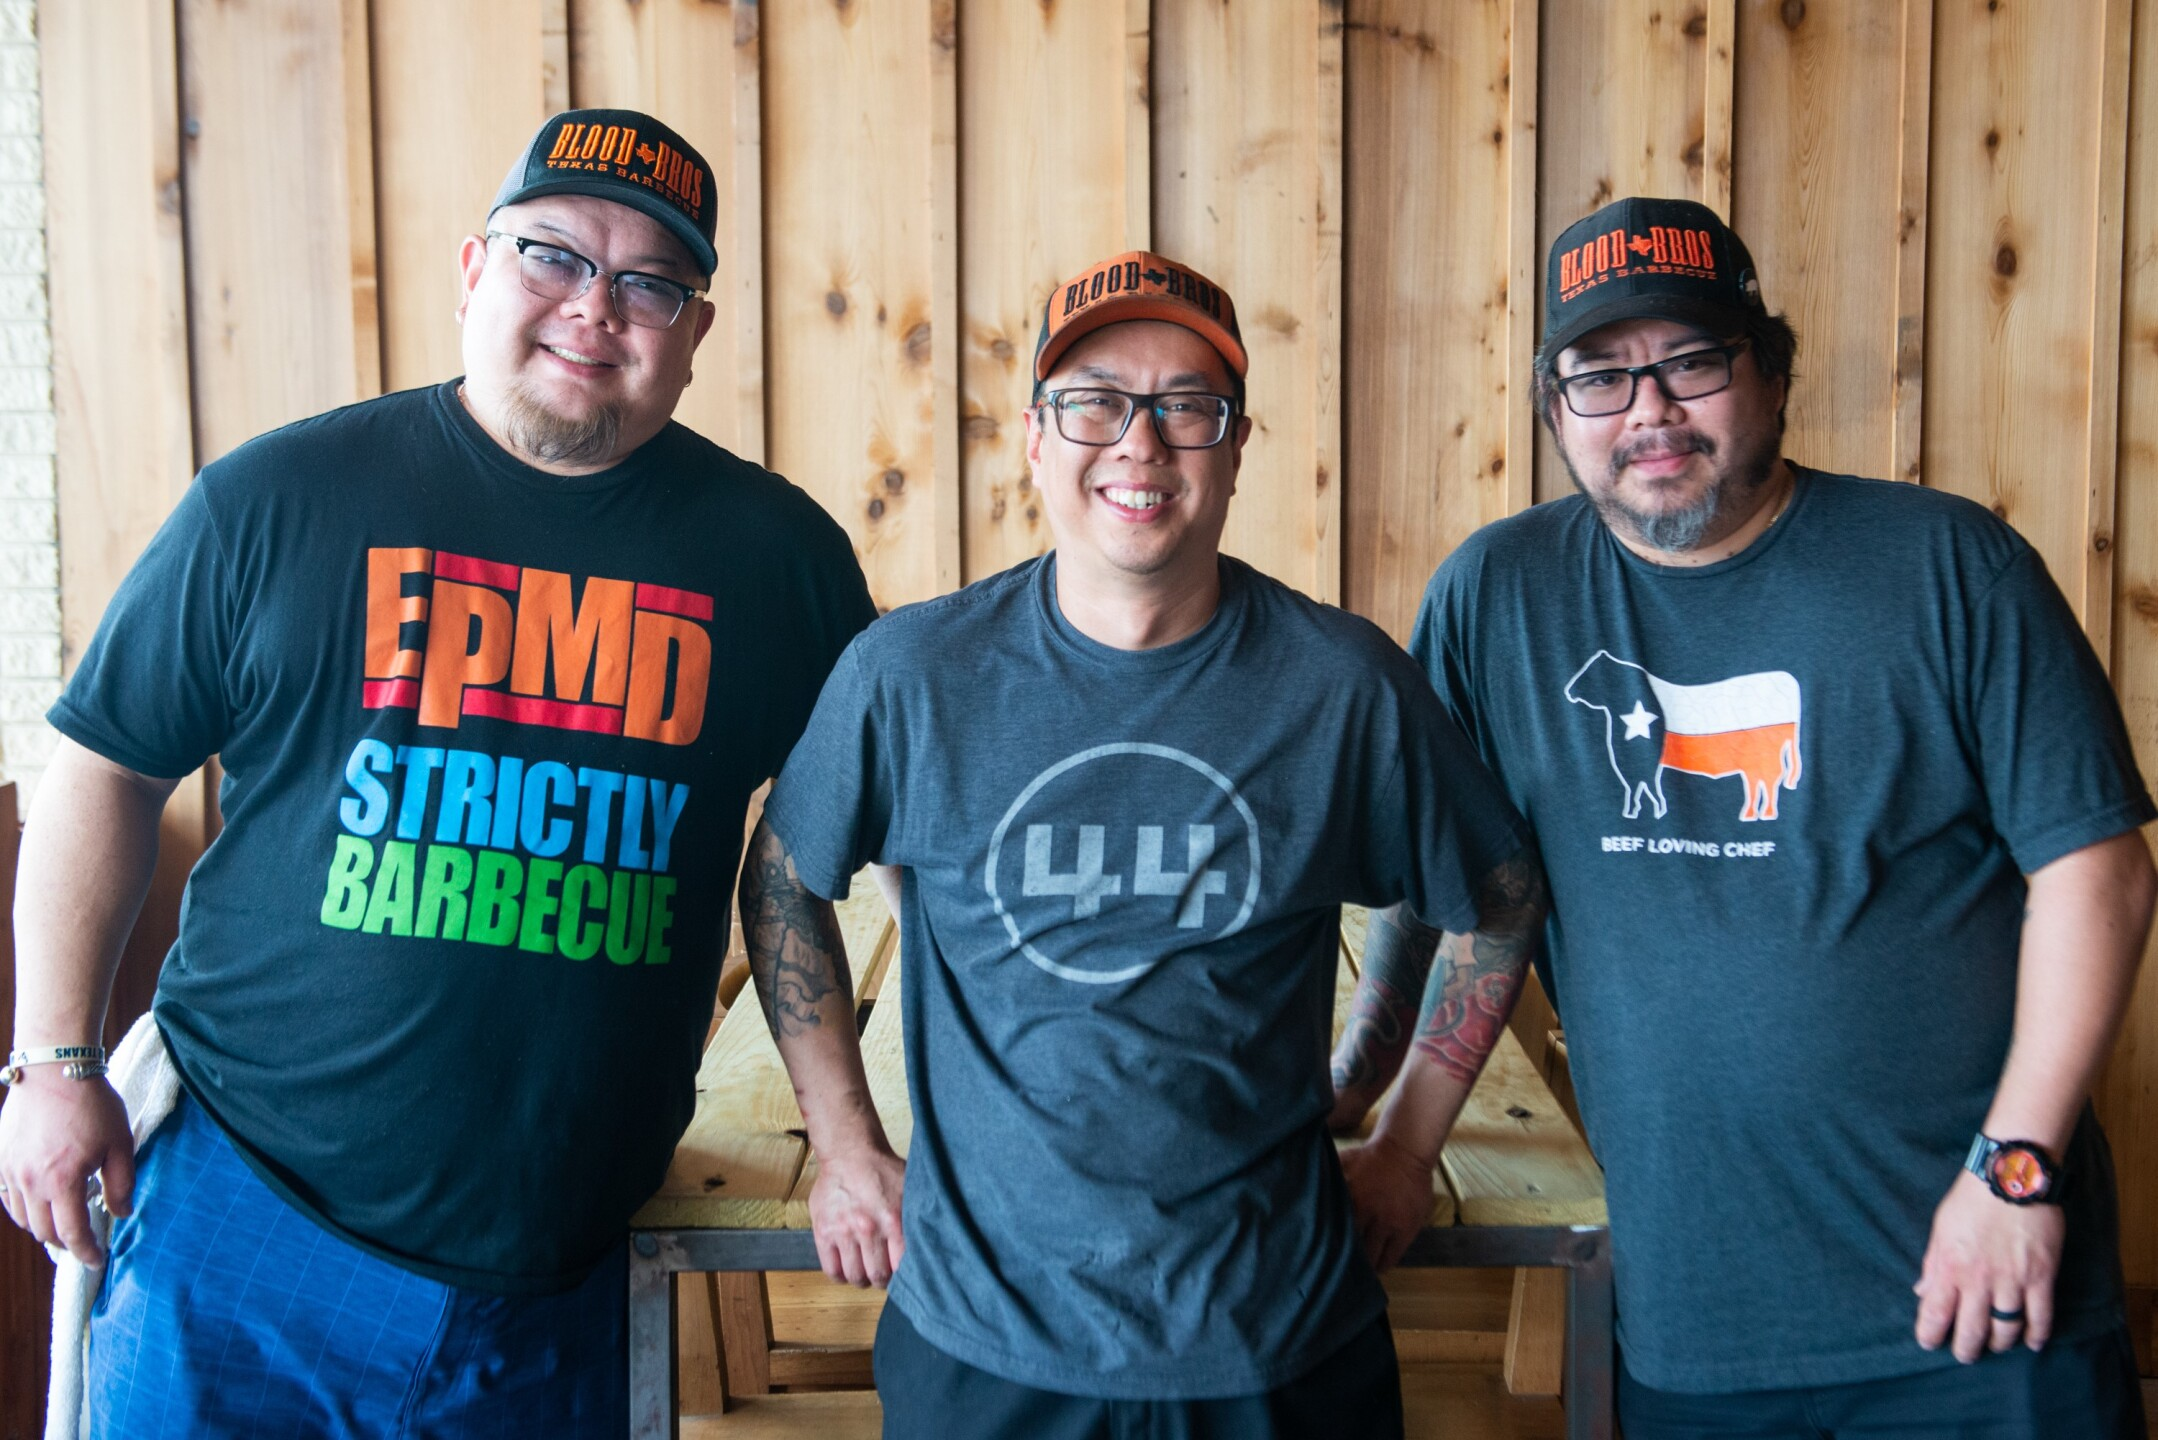 Blood Bros BBQ - Robin, Terry and Quy_Credit Will Blunt.jpg